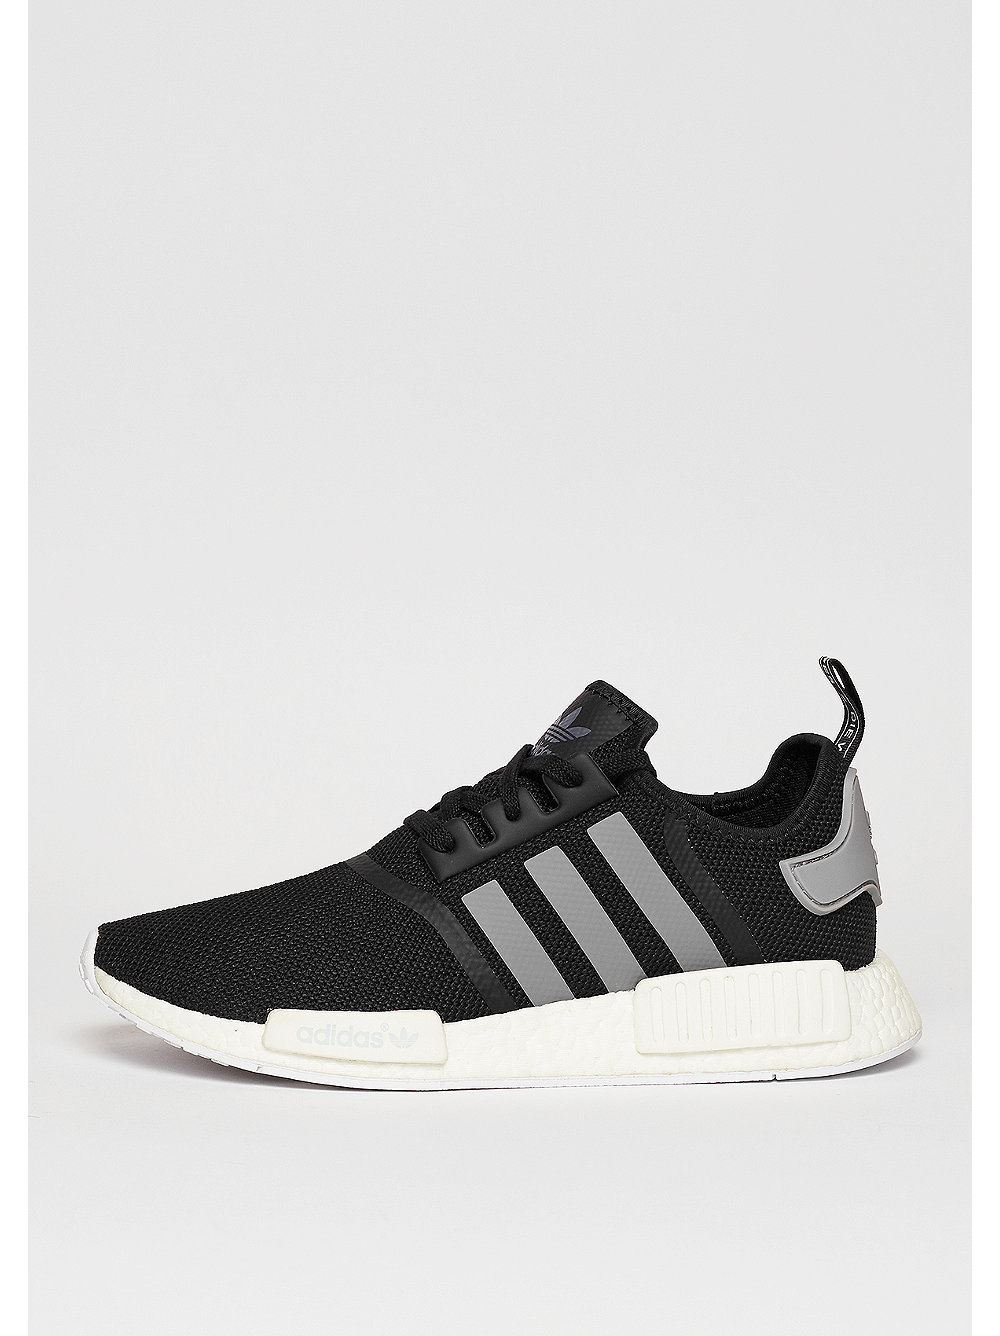 adidas NMD Runner core black-solid grey-white